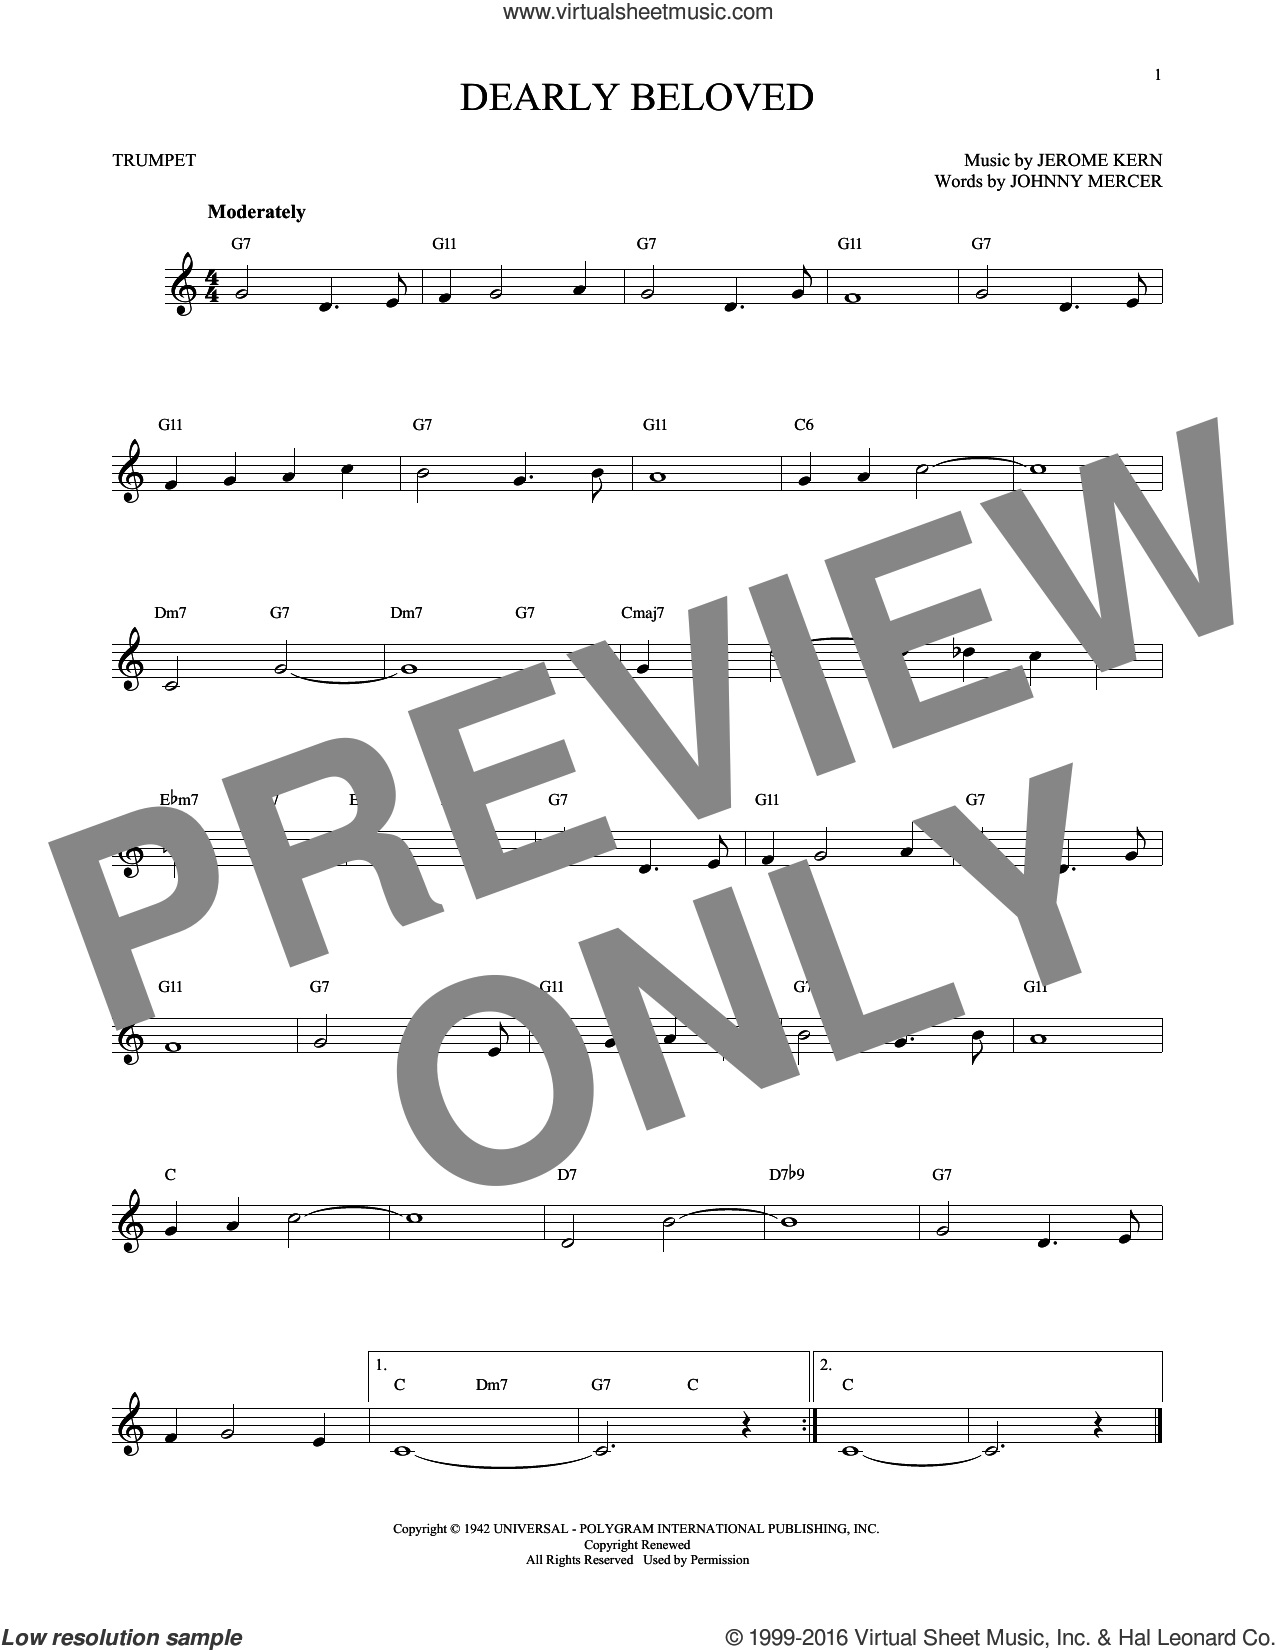 Dearly Beloved sheet music for trumpet solo by Jerome Kern and Johnny Mercer, intermediate skill level